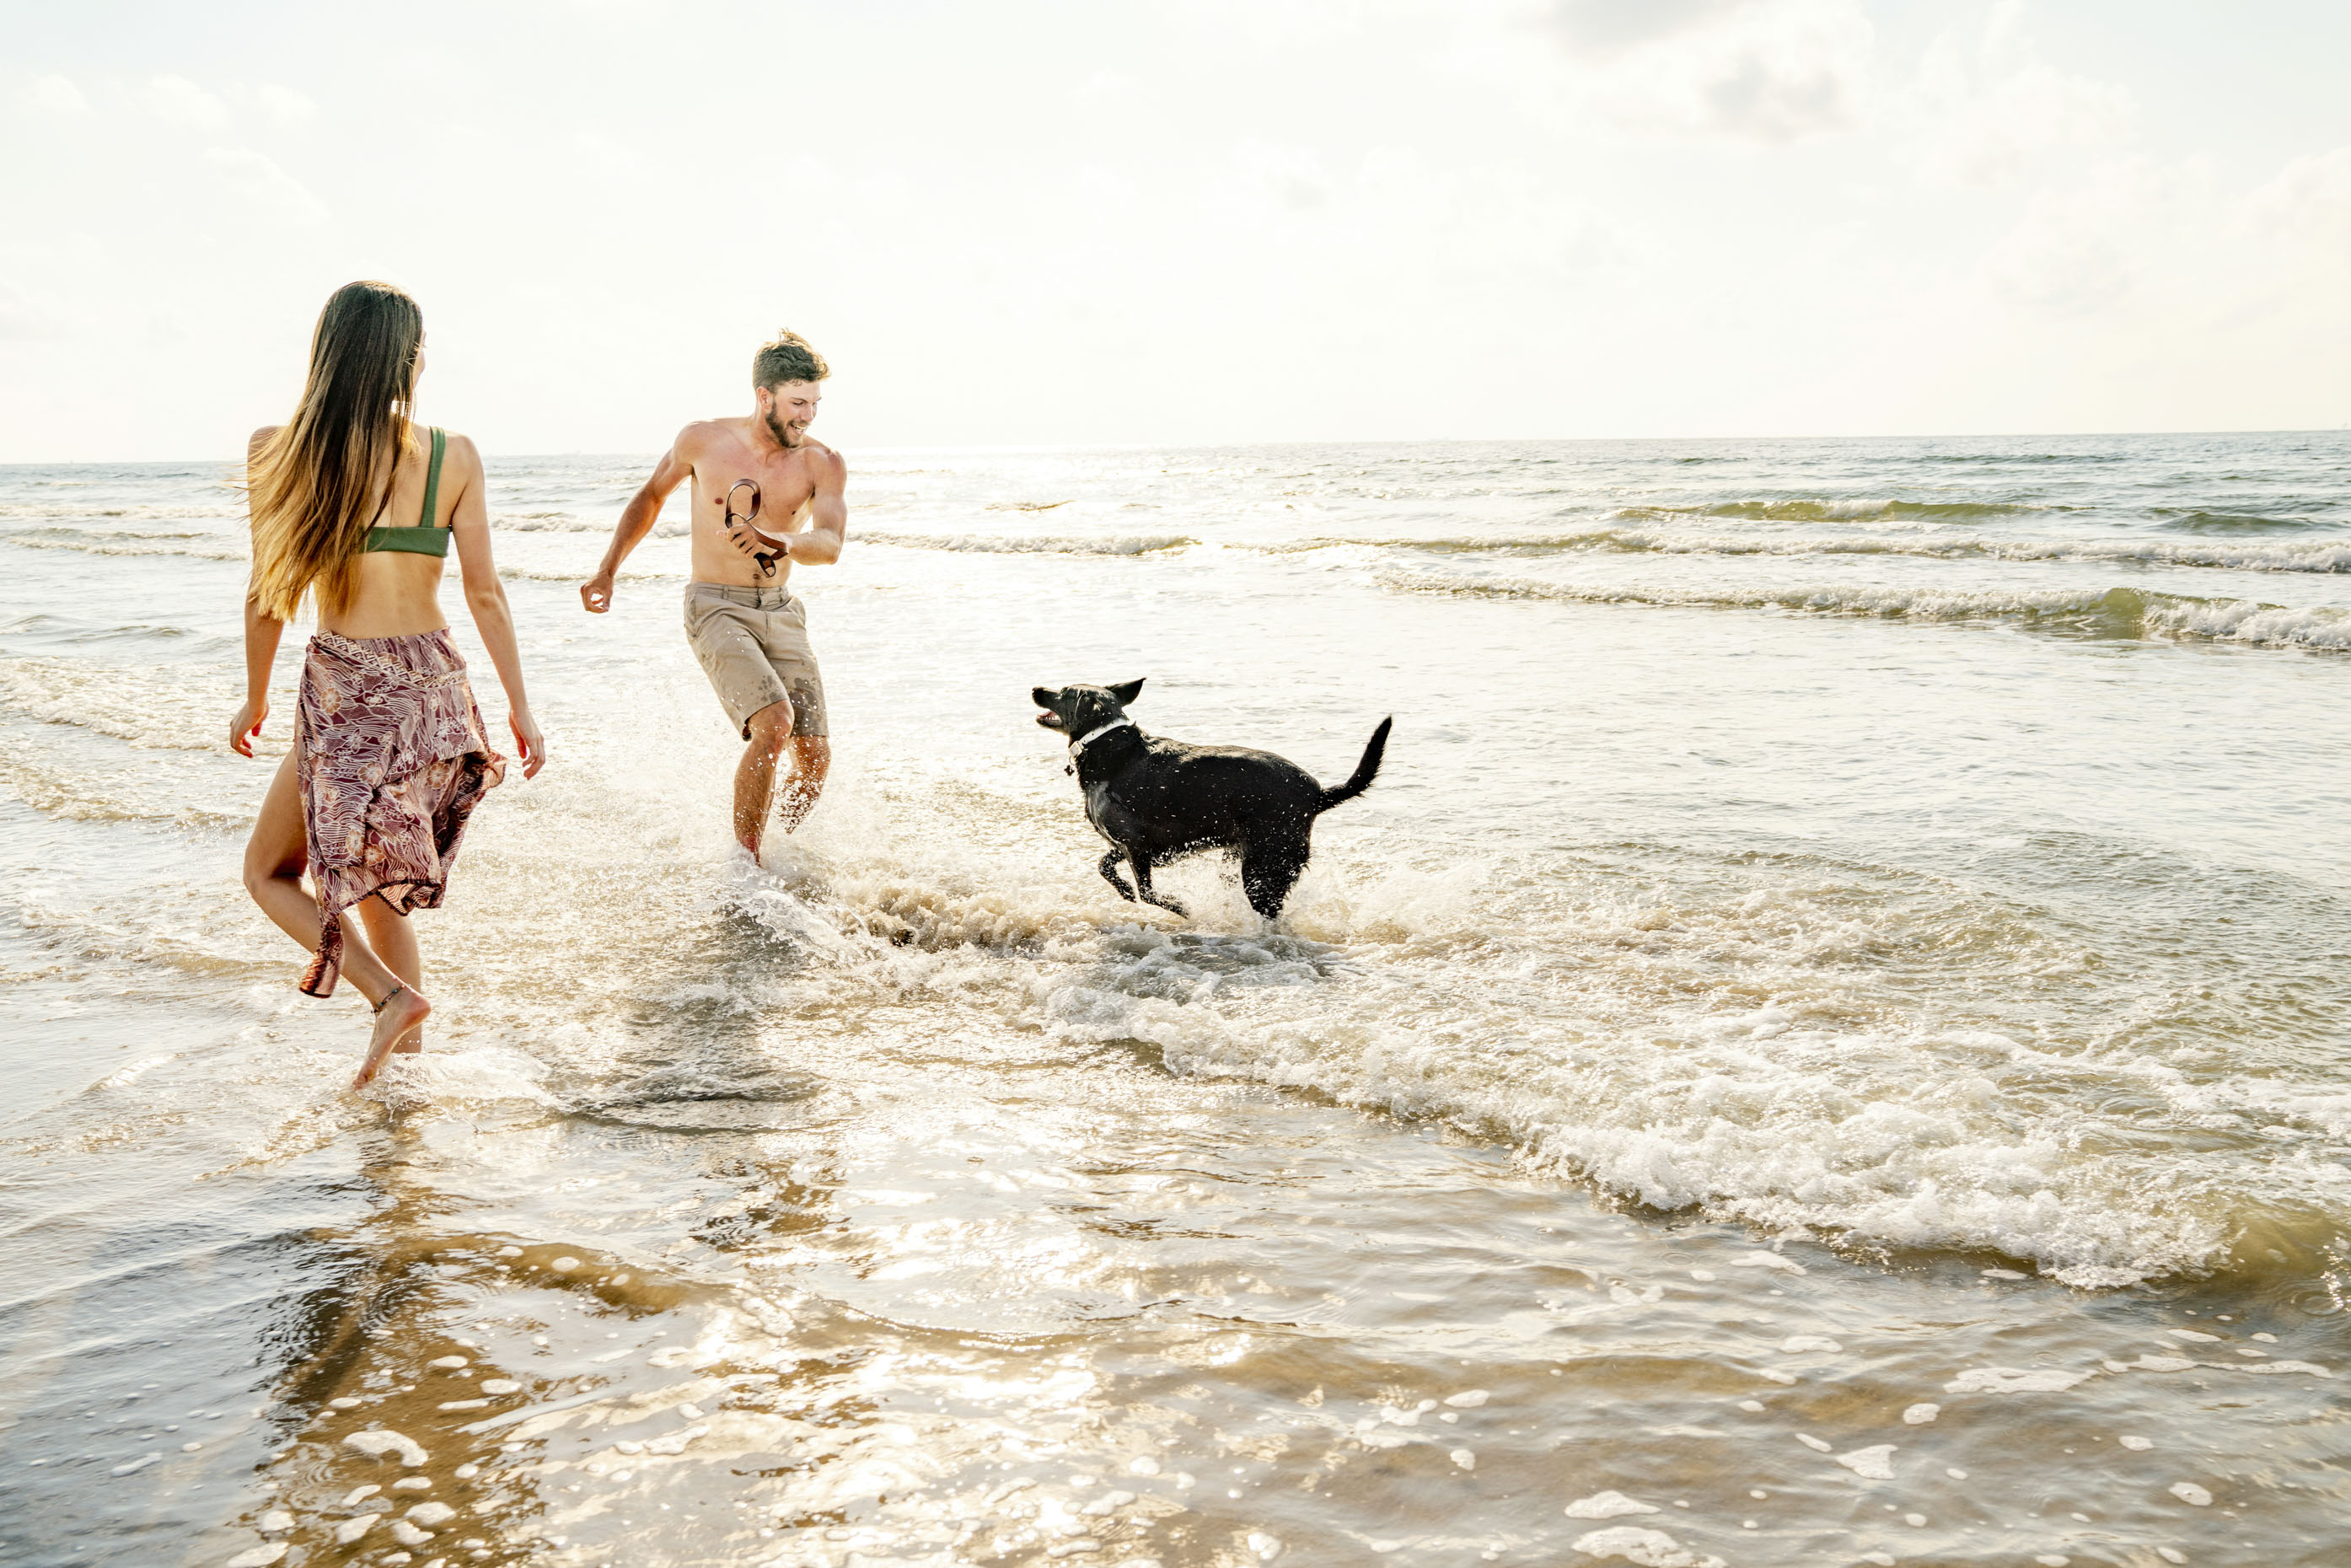 Palmilla-Beach-Resort-Couple-playing-with-dog-in-ocean-Inti-St-Clair